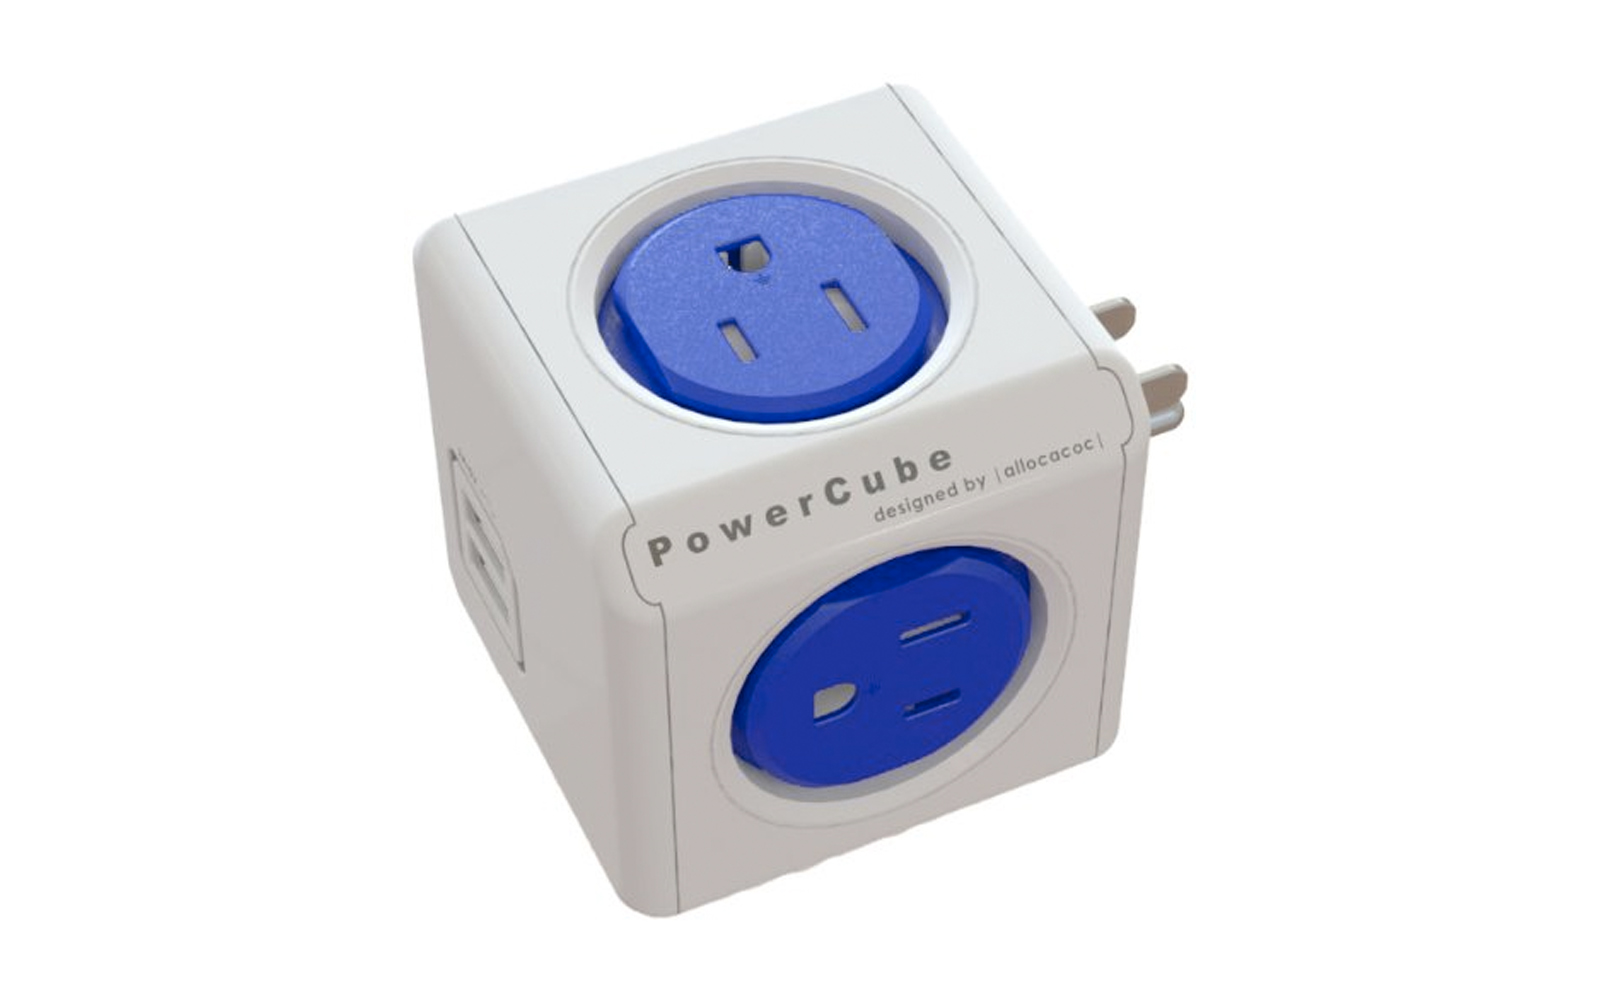 PowerCube Electric Outlet Wall Adapter Power Strip